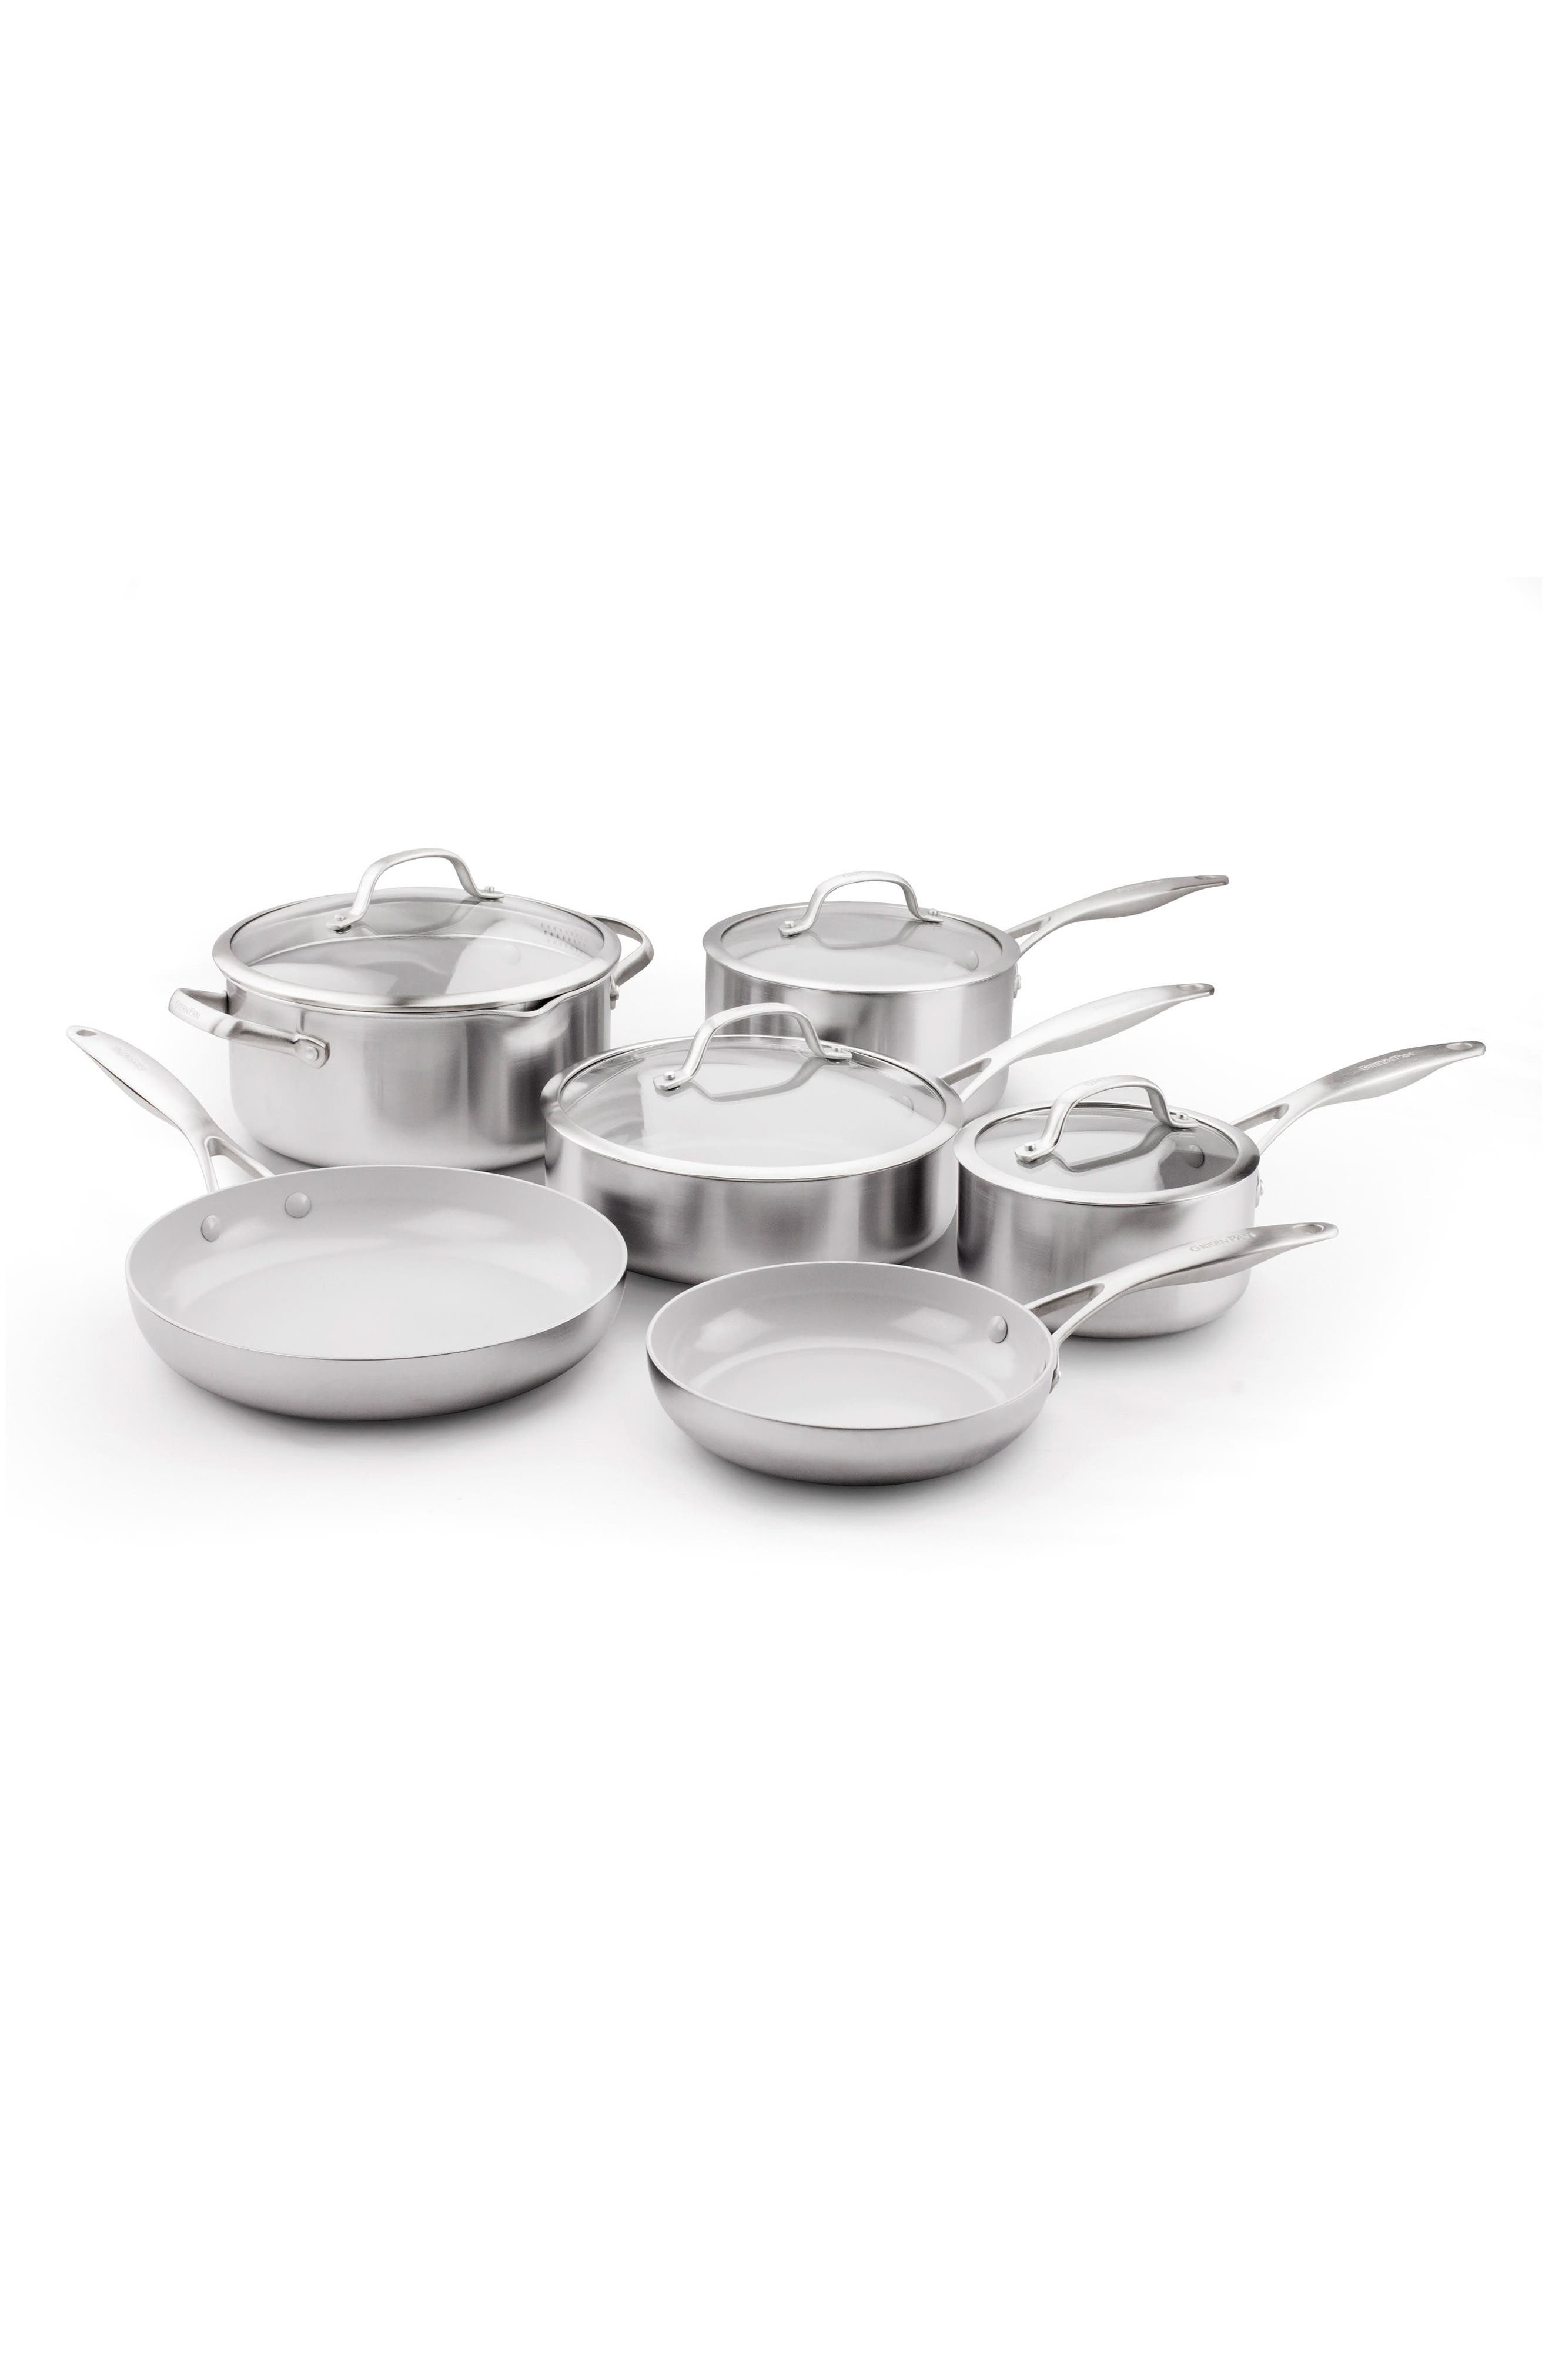 Venice Pro 10-Piece Multilayer Stainless Steel Ceramic Nonstick Cookware Set,                             Main thumbnail 1, color,                             STAINLESS STEEL